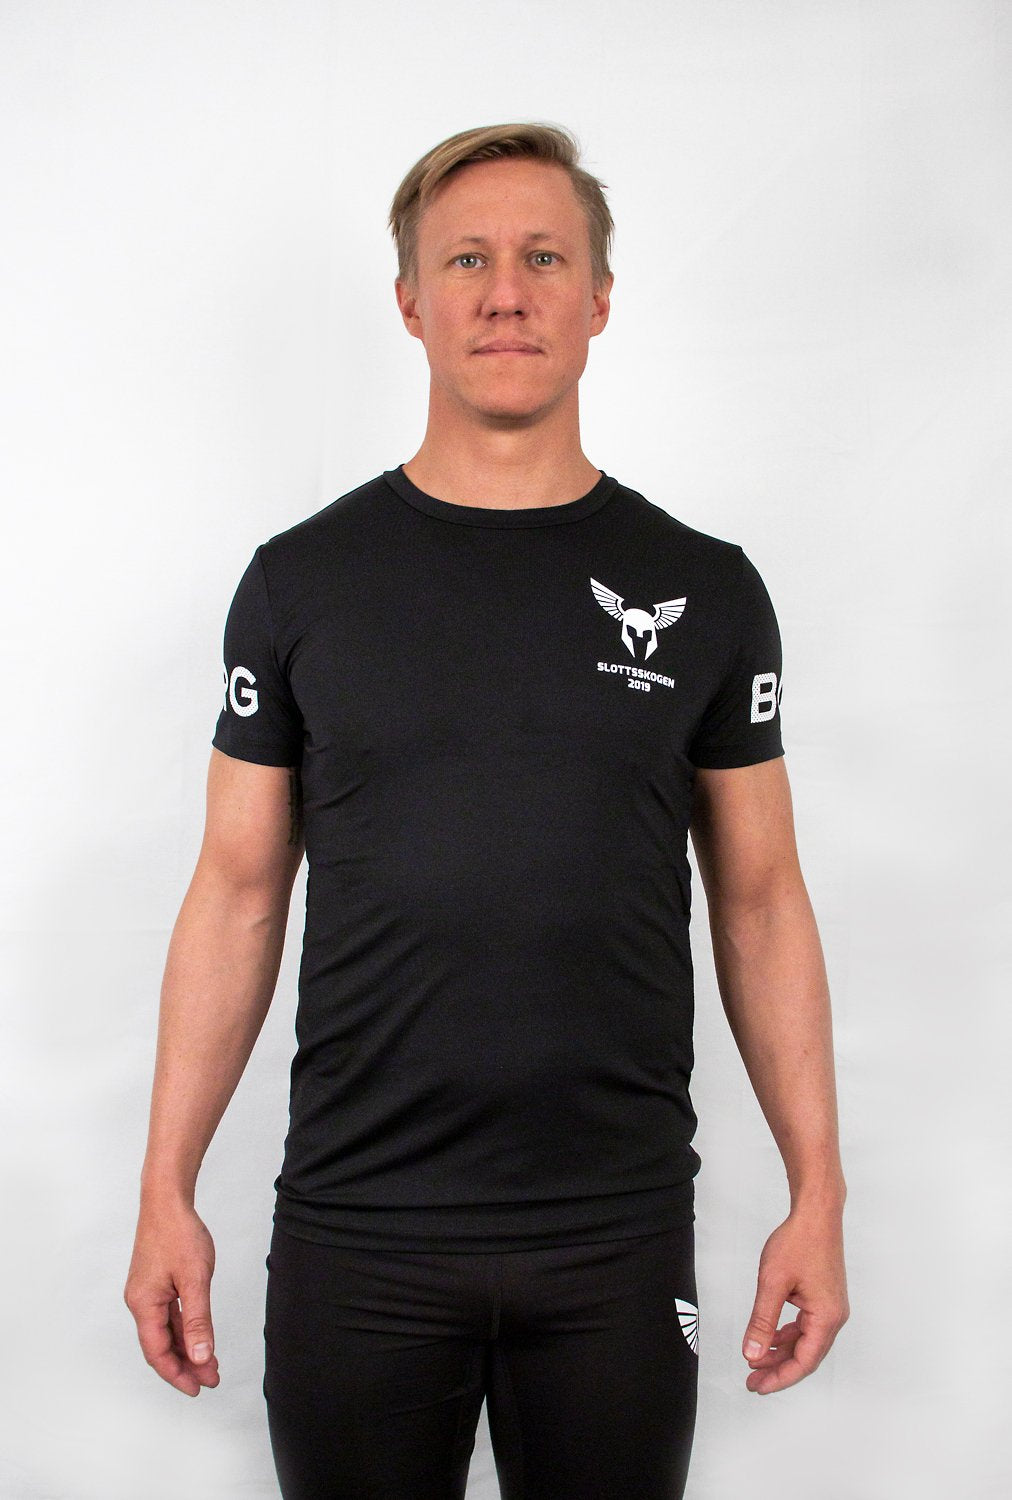 Men Slottsskogen race T-shirt 2019